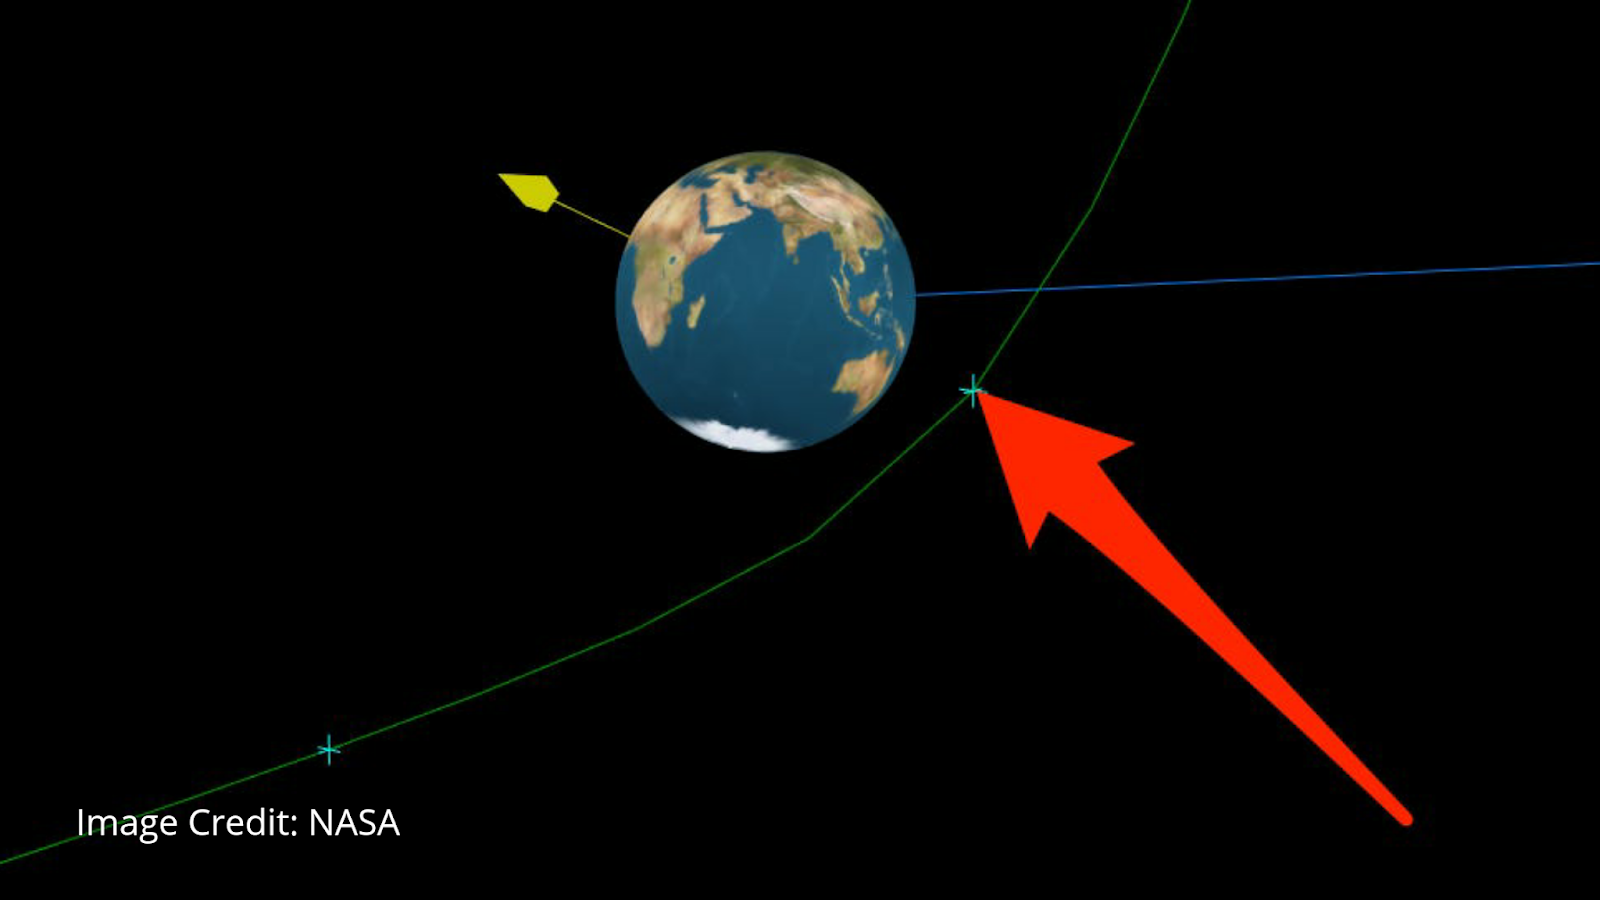 2020 Qg closest asteroid without hit